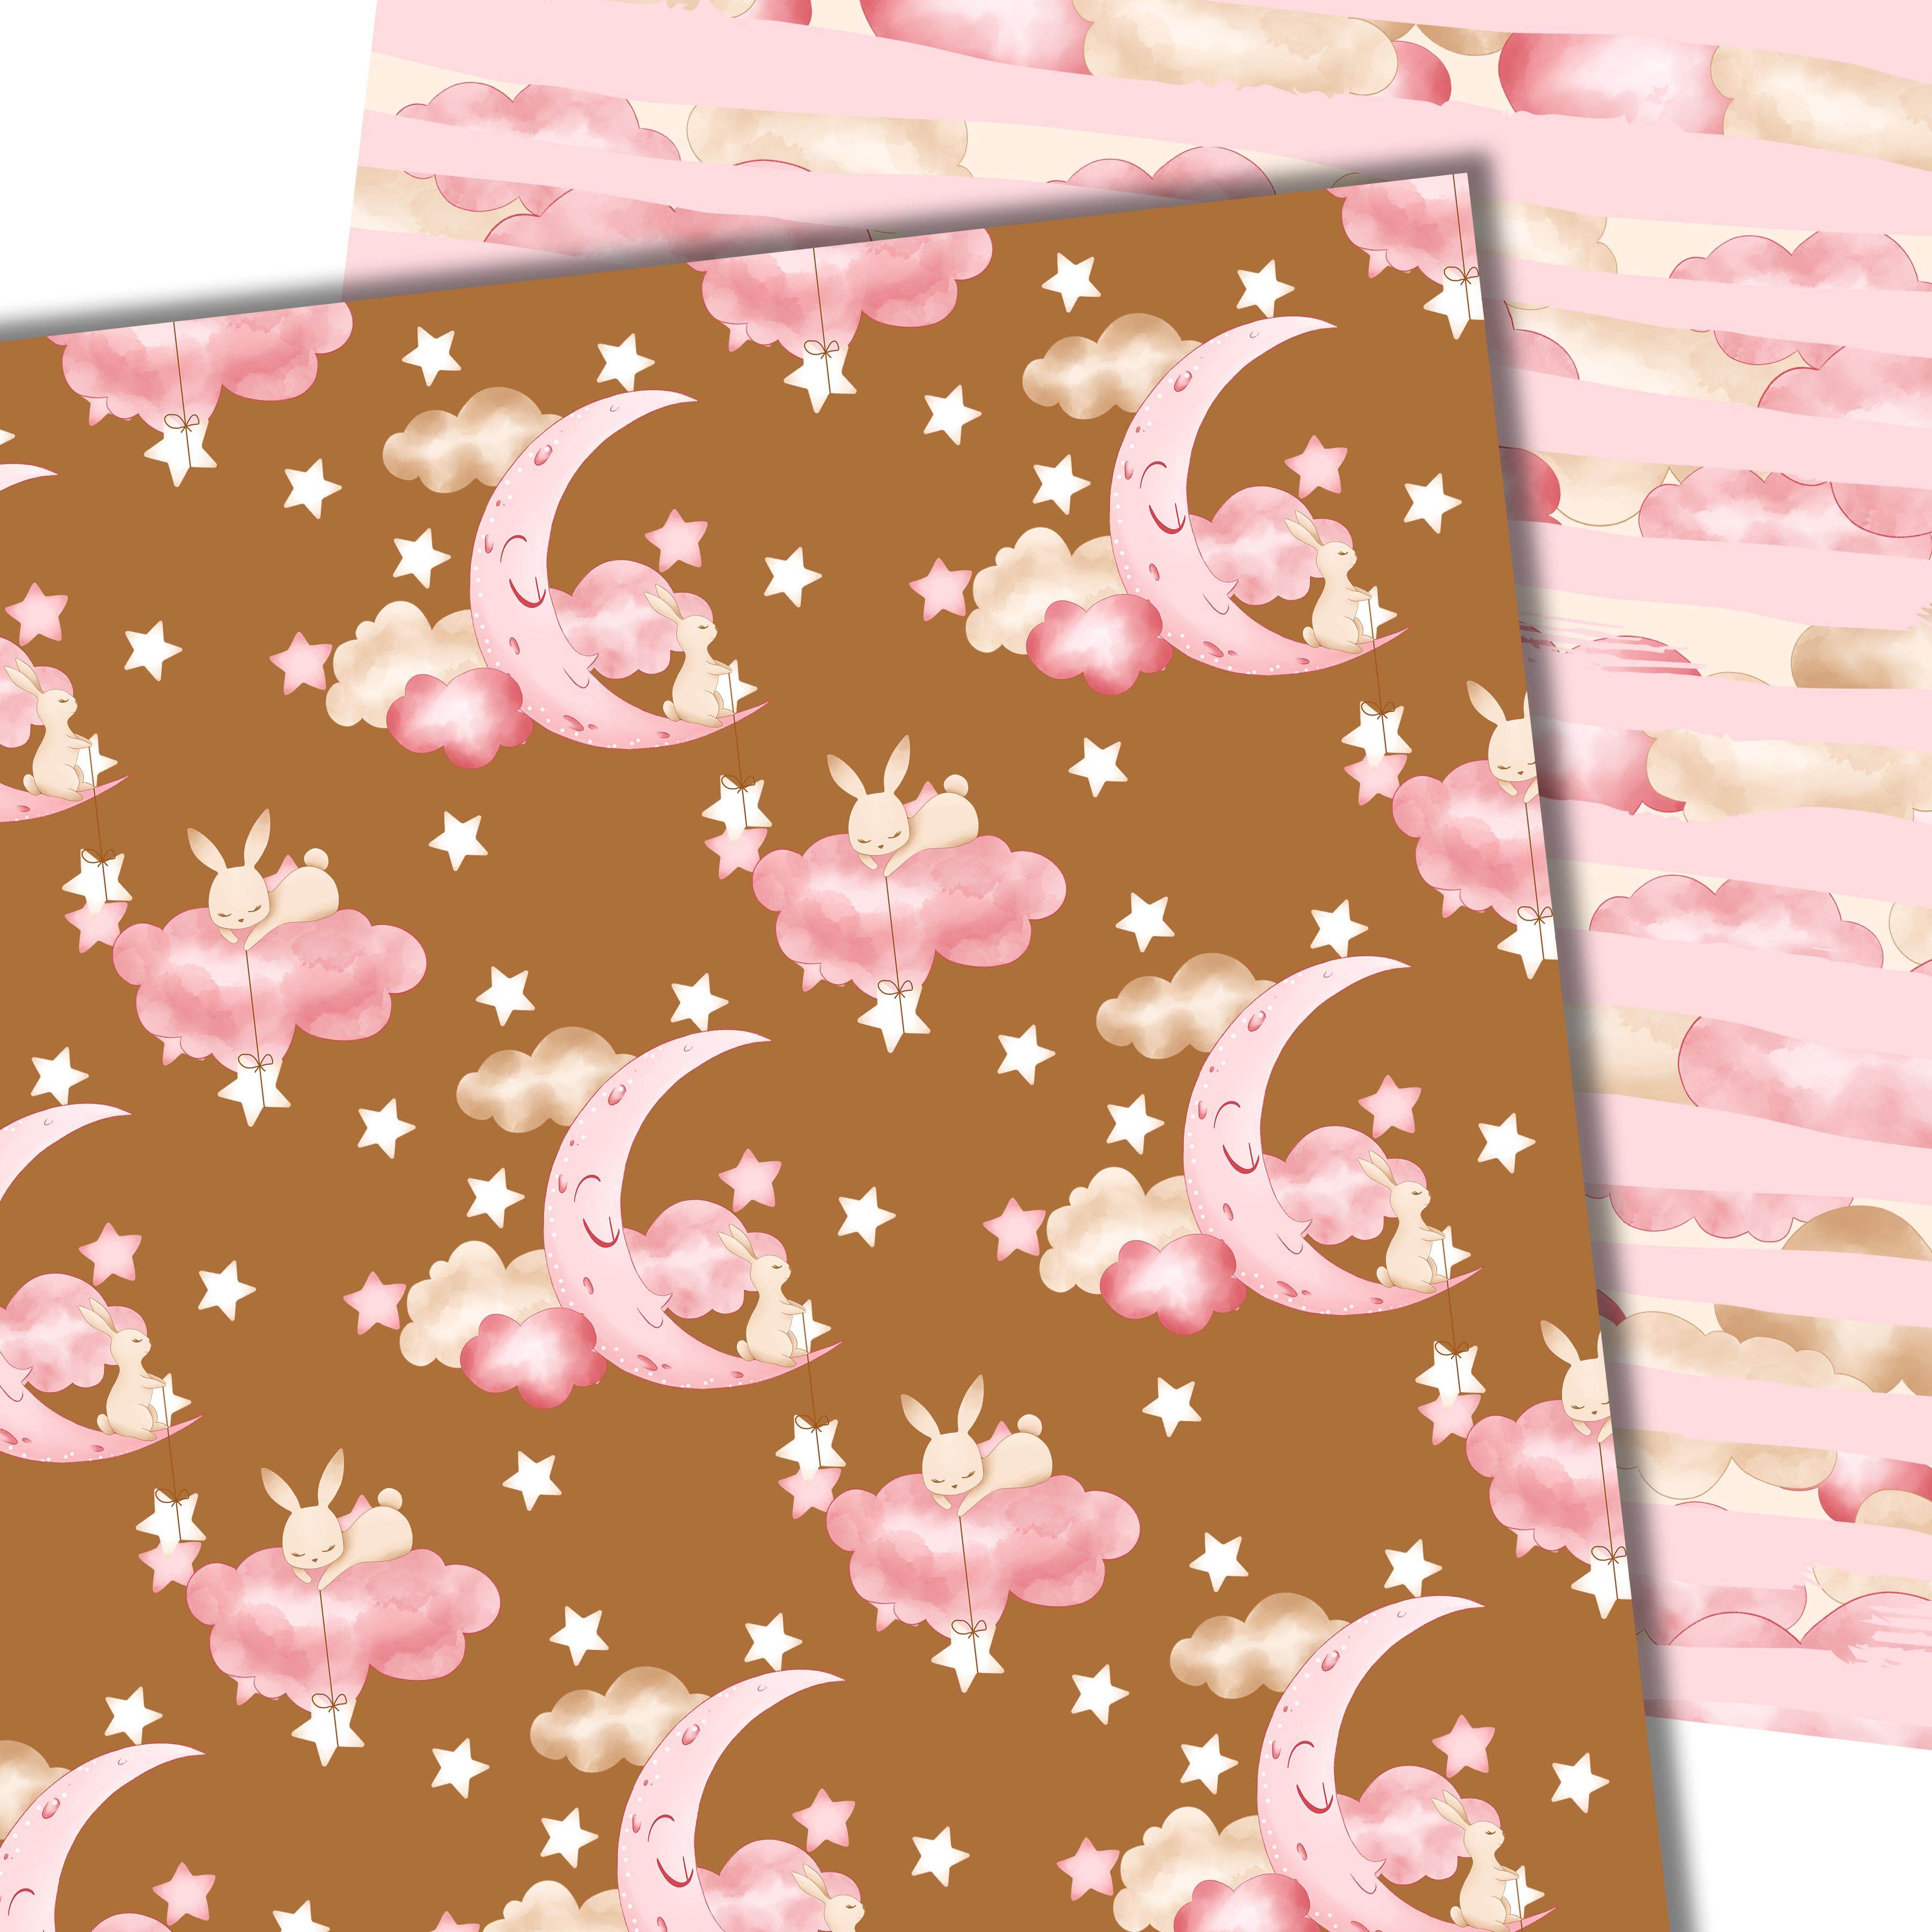 Good night bunny pattern in pink example image 3